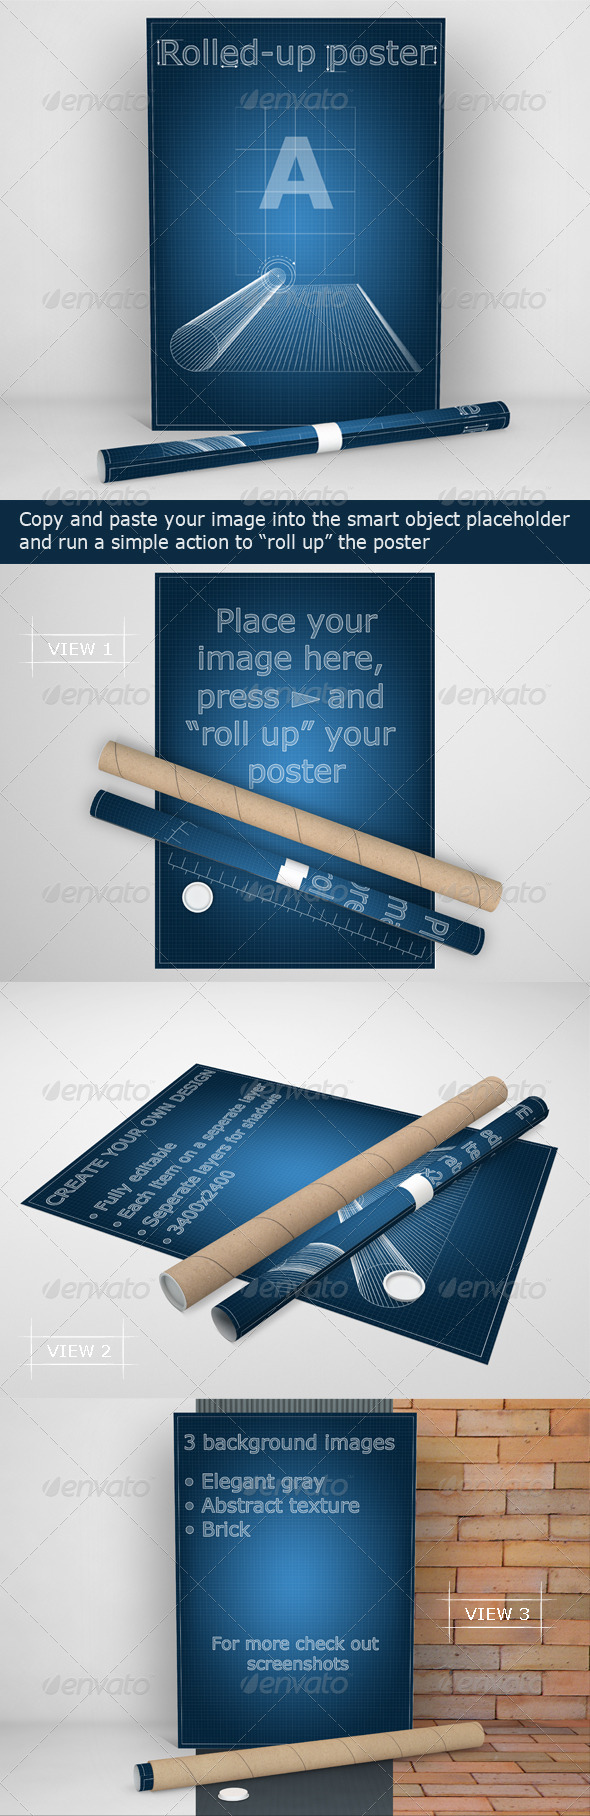 Rolled-Up Poster Mock-Up - Posters Print